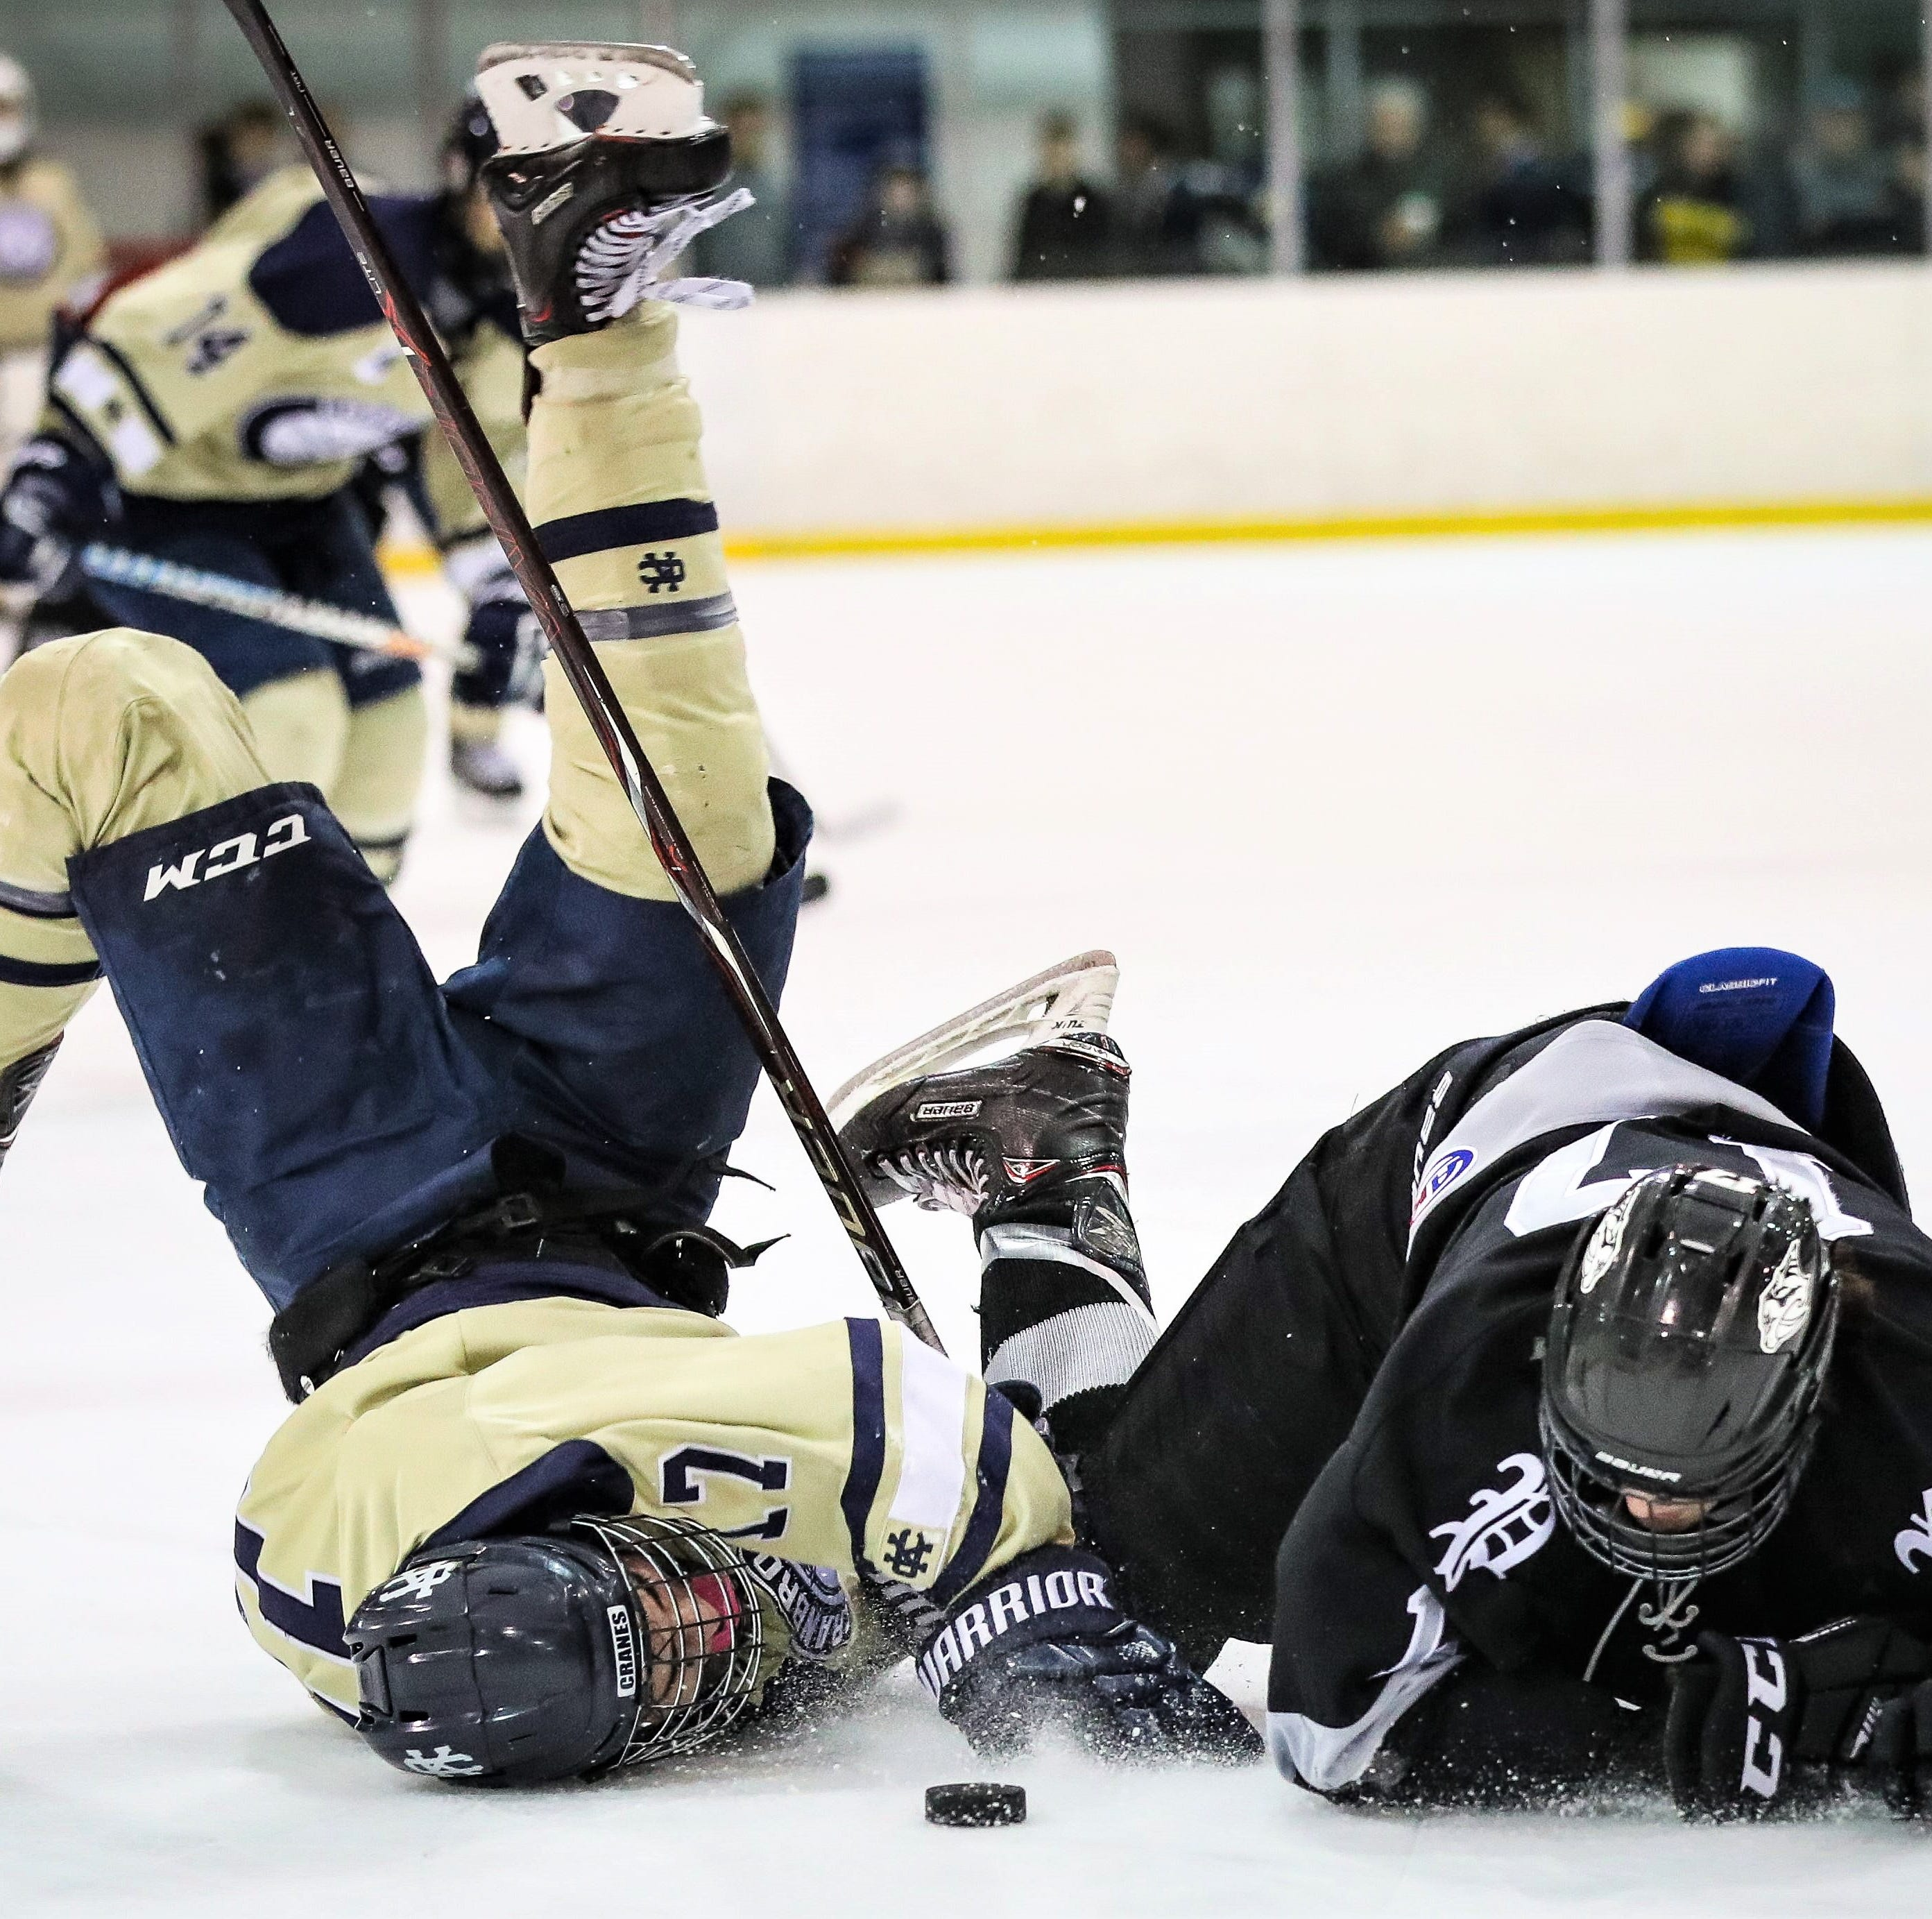 Cranbrook cools off Plymouth in MIHL-KLAA Challenge Showcase at Edgar